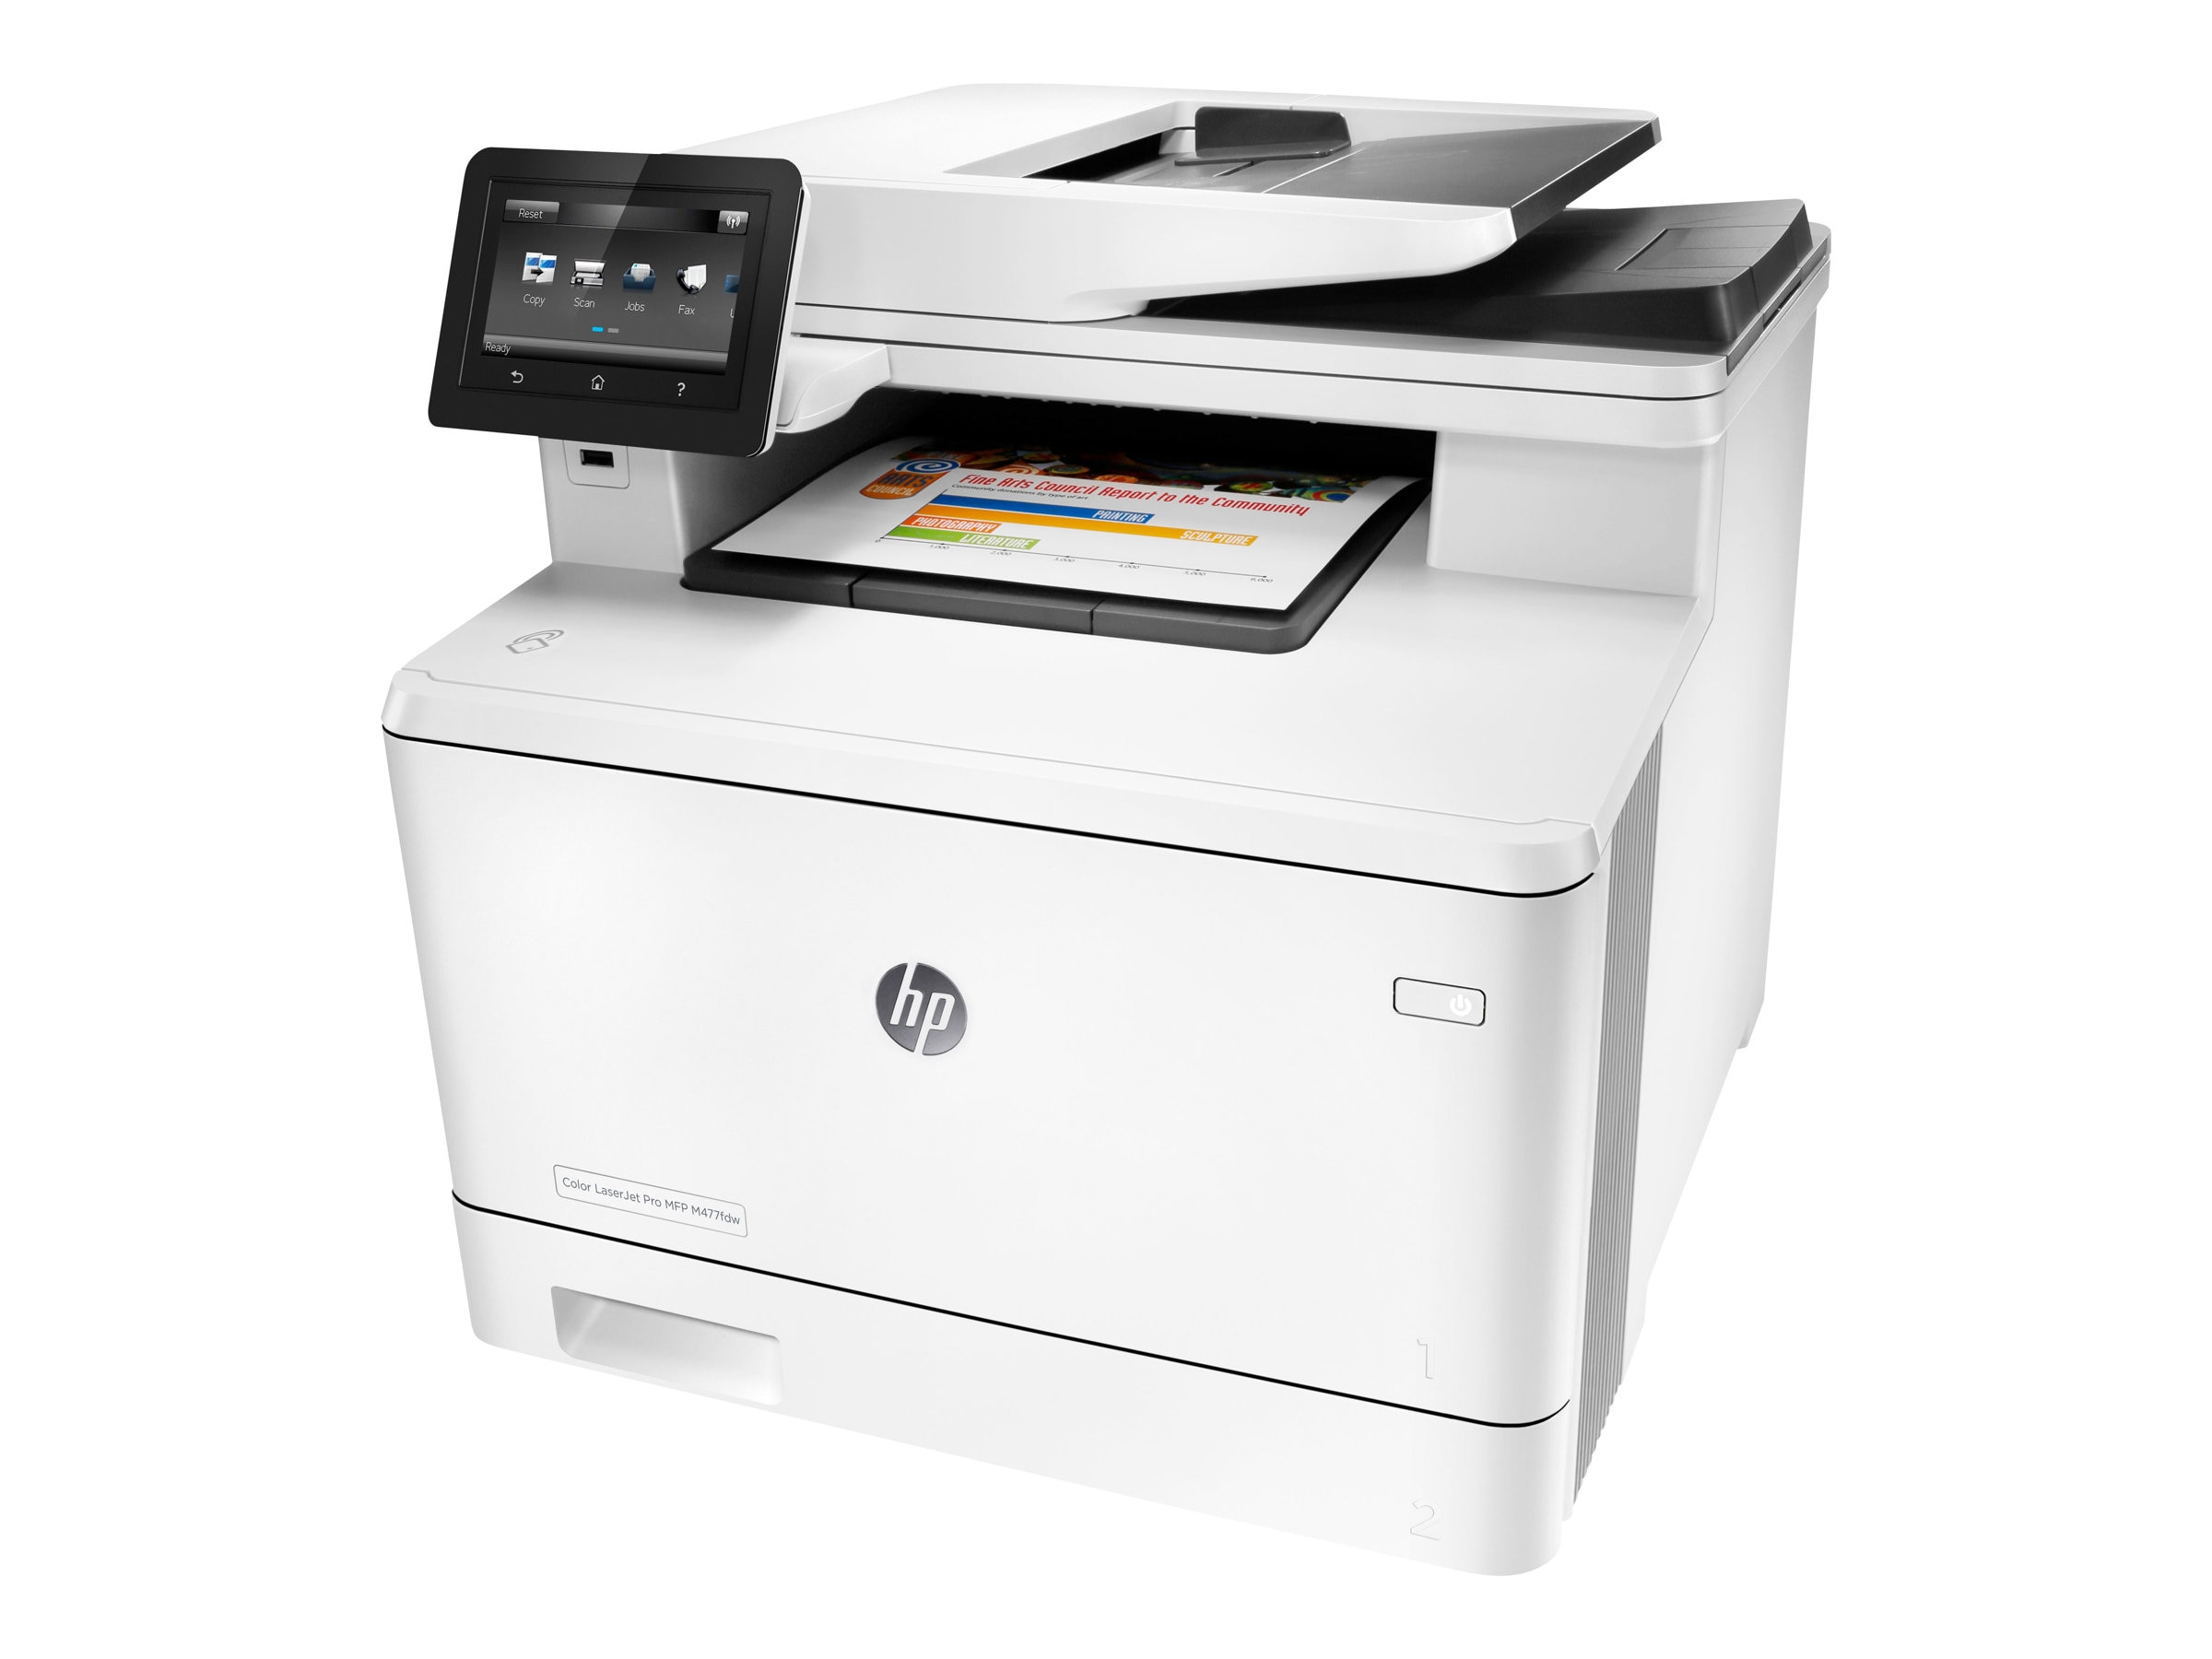 HP Color LaserJet Pro MFP M477fdw ($629 - $200 Instant Rebate = $429 Expires 11 30)